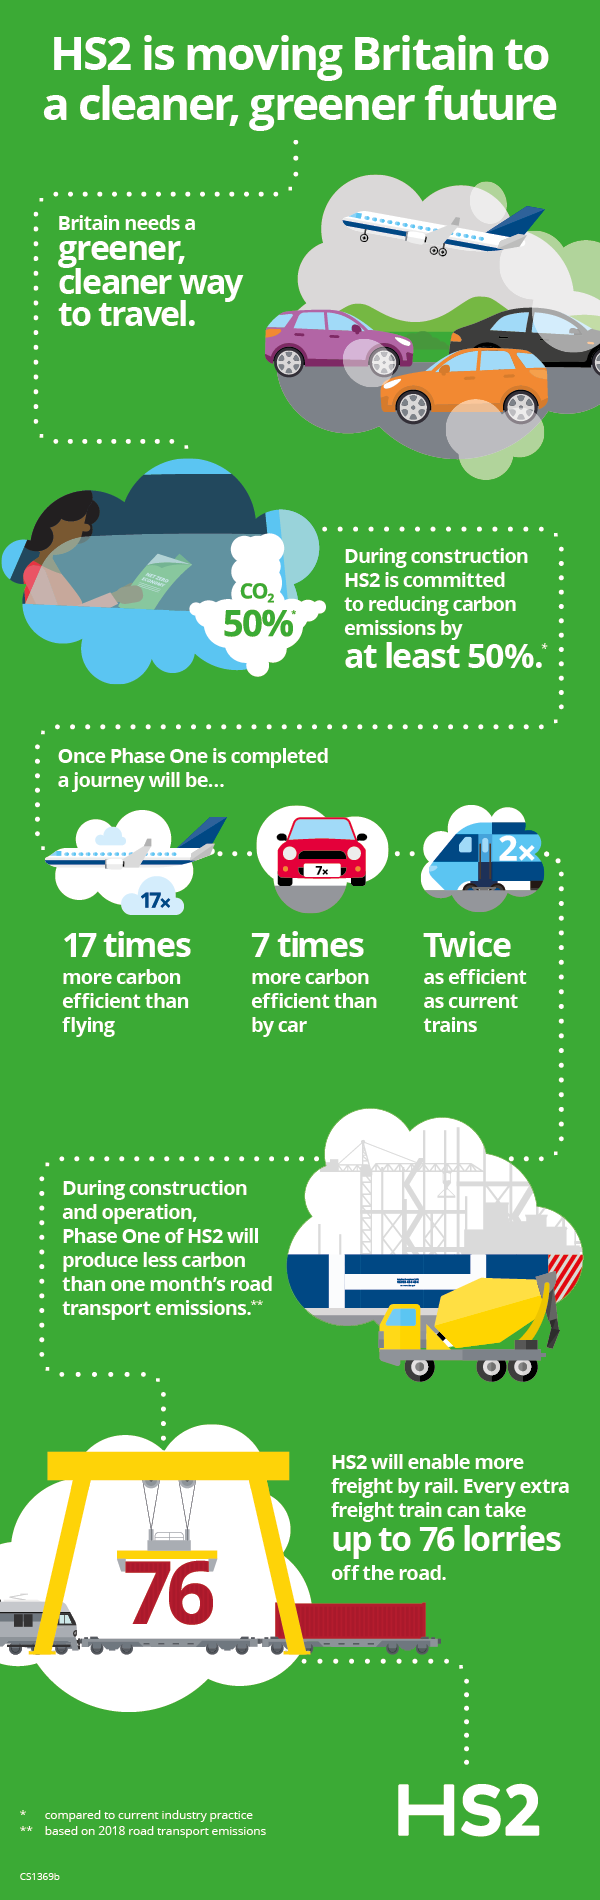 HS2 is moving Britain to a cleaner, greener future. Britain needs a greener, cleaner way to travel. During construction HS2 is committed to reducing carbon emissions by at least 50%. Once Phase One is completed a journey will be 17 times more carbon efficient than flying, 7 times more carbon efficient than by car and twice as efficient as current trains. During construction and operation, Phase One of HS2 will produce less carbon than one month's road transport emissions. Hs2 will enable more freight train can take up to 76 lorries off the road.